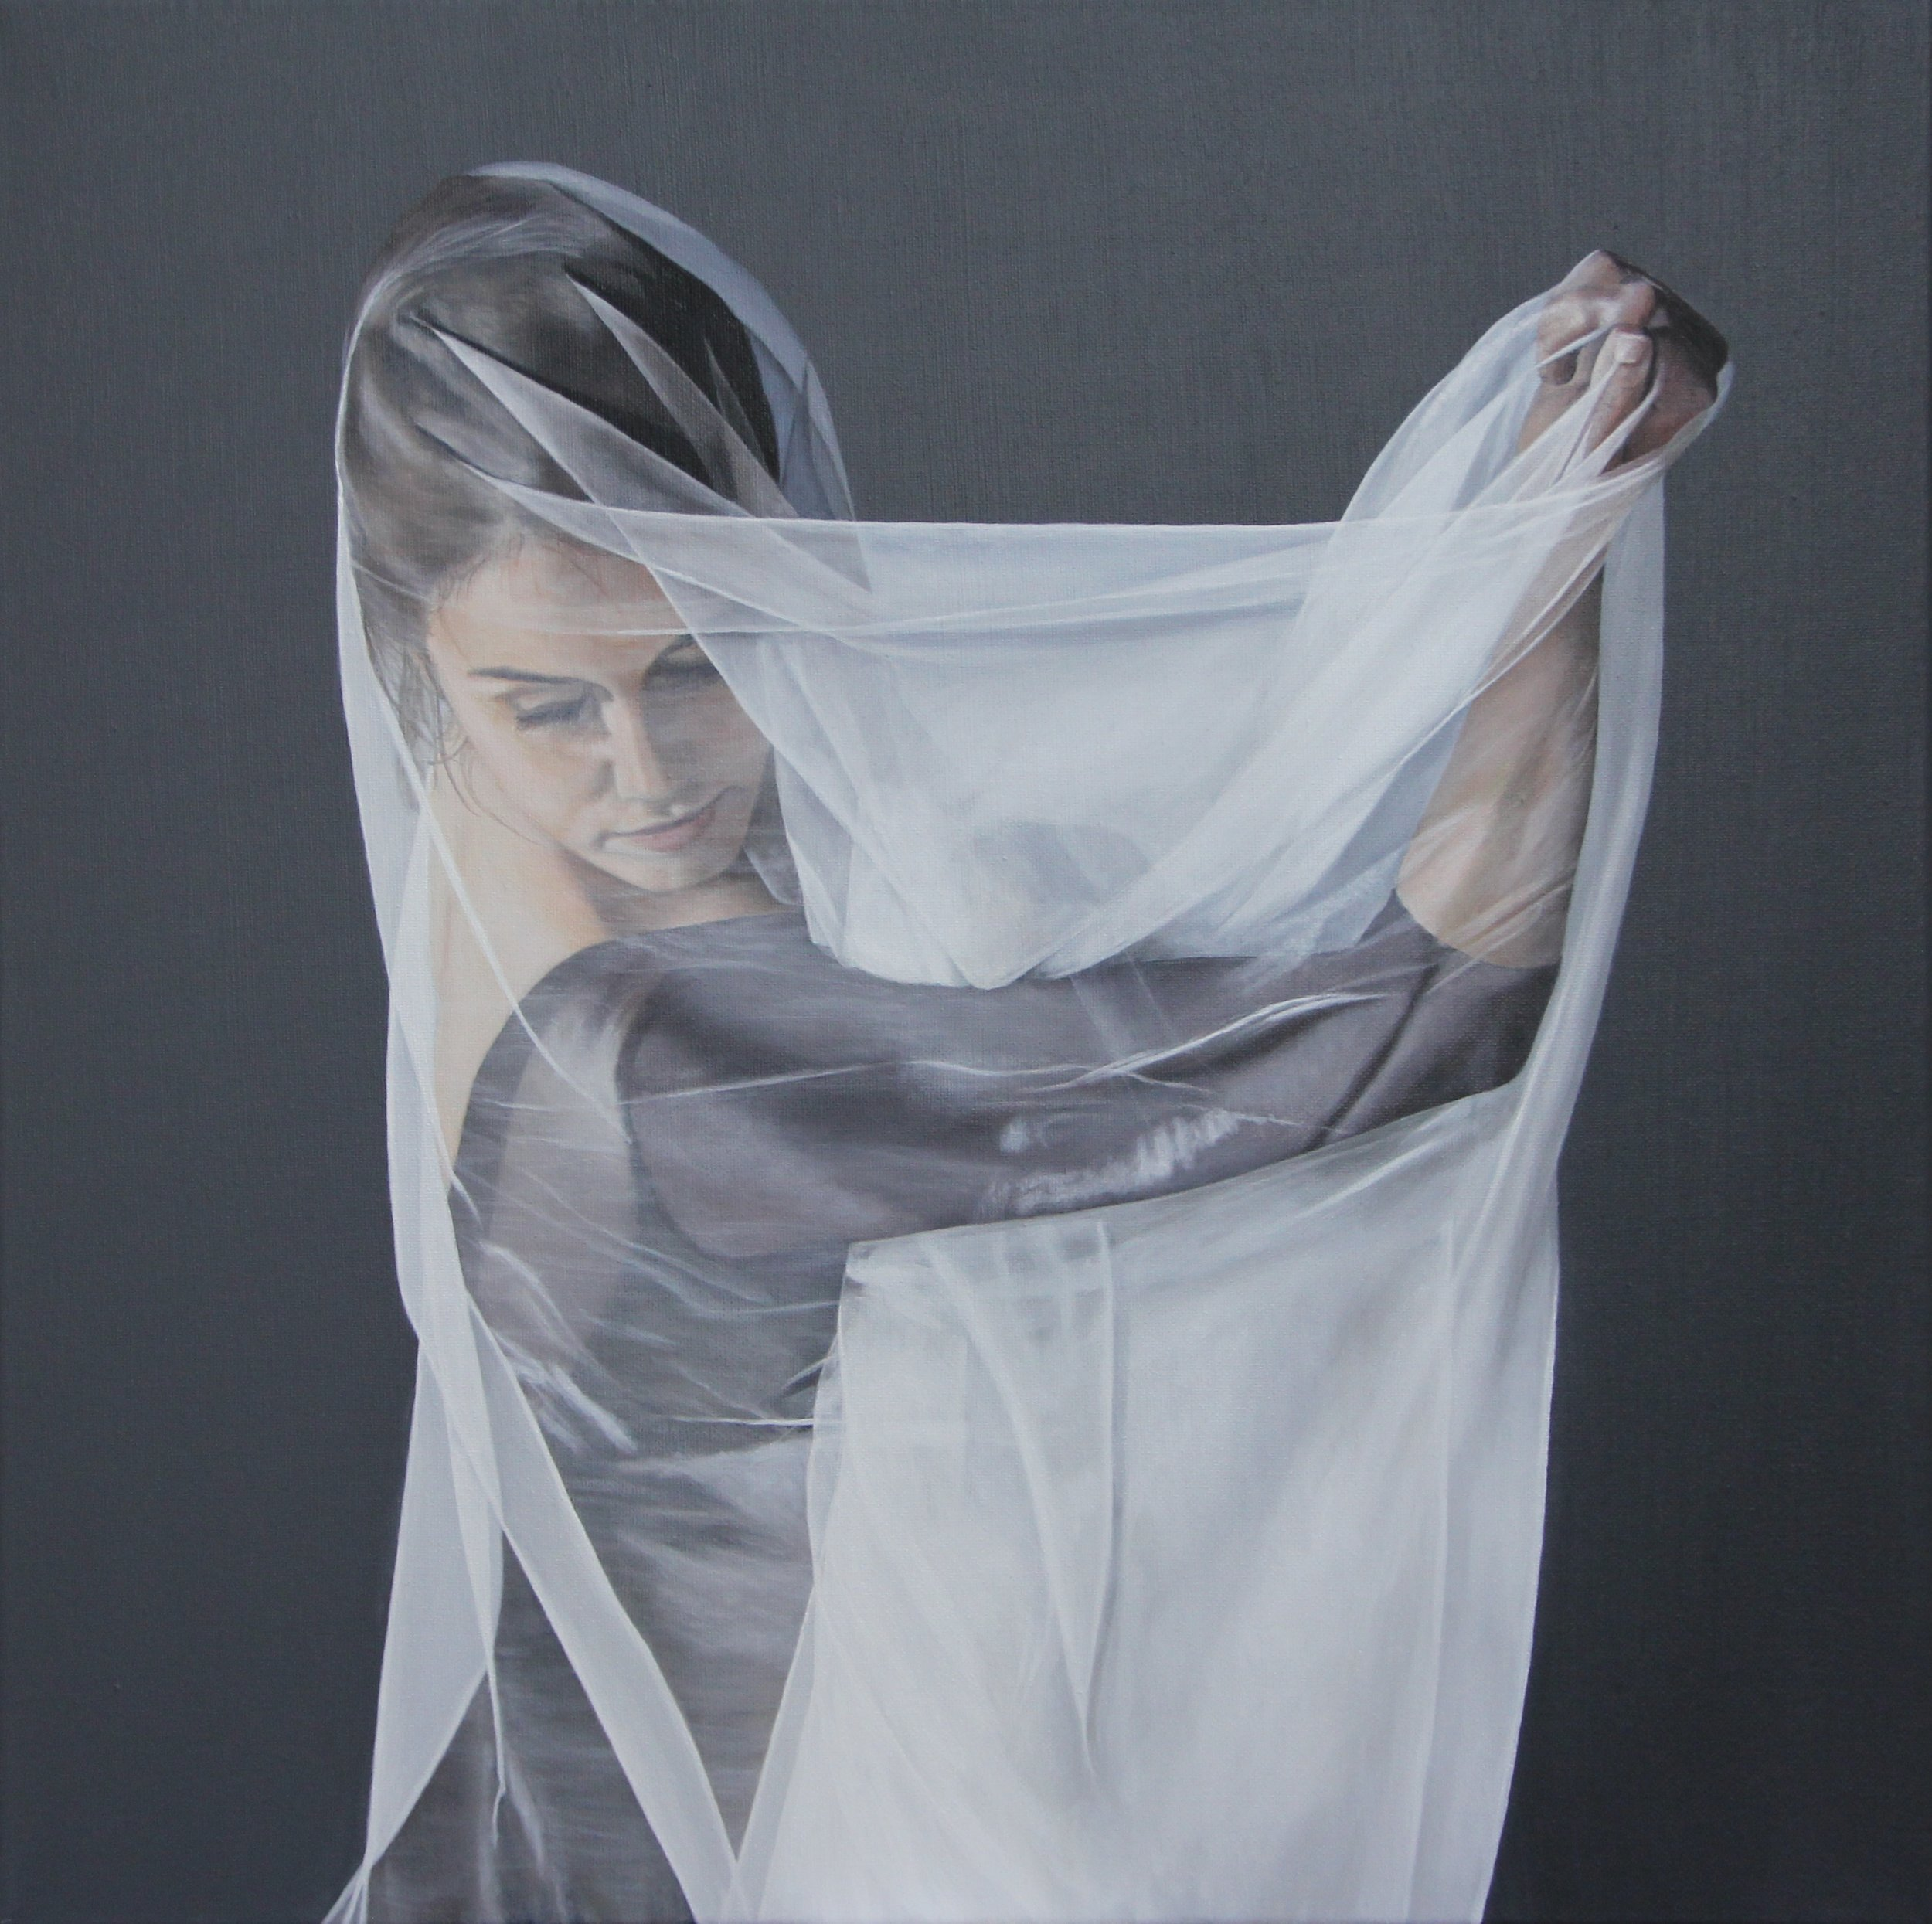 Veiled Within | 20x20"